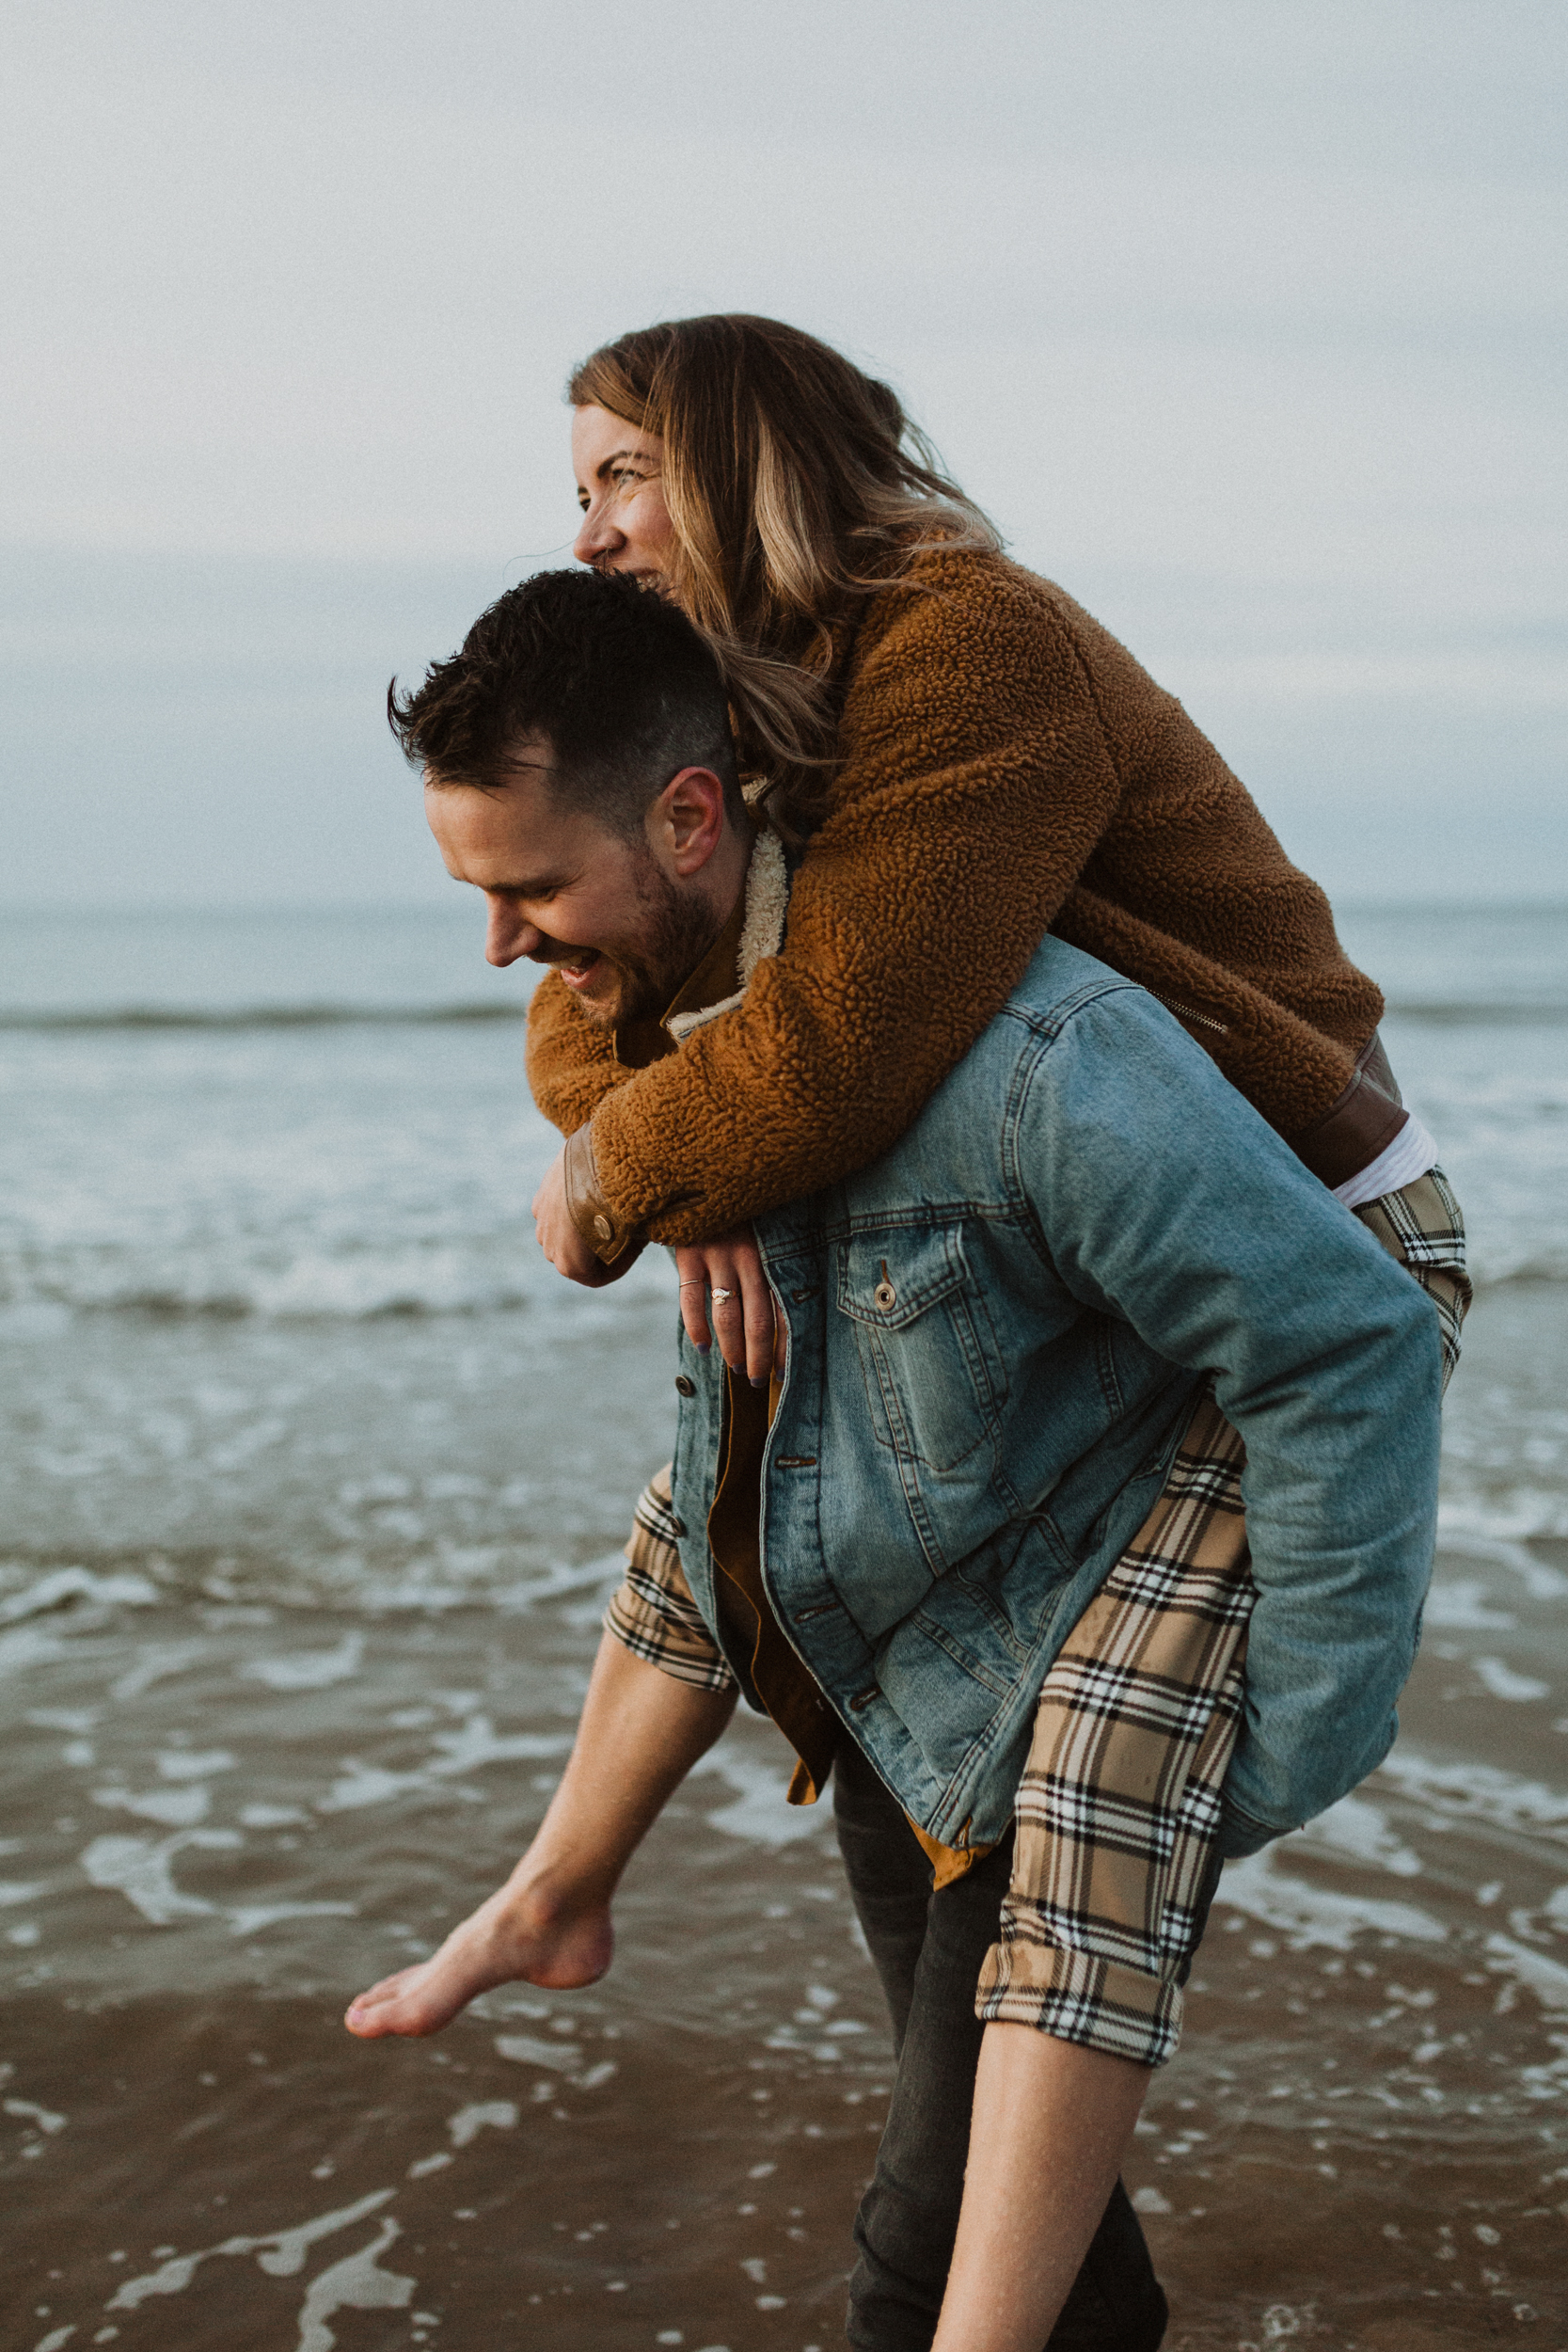 Claire-Liam-Beach-Coastal-Engagement-Session-Norfolk-Darina-Stoda-Photography-31.jpg